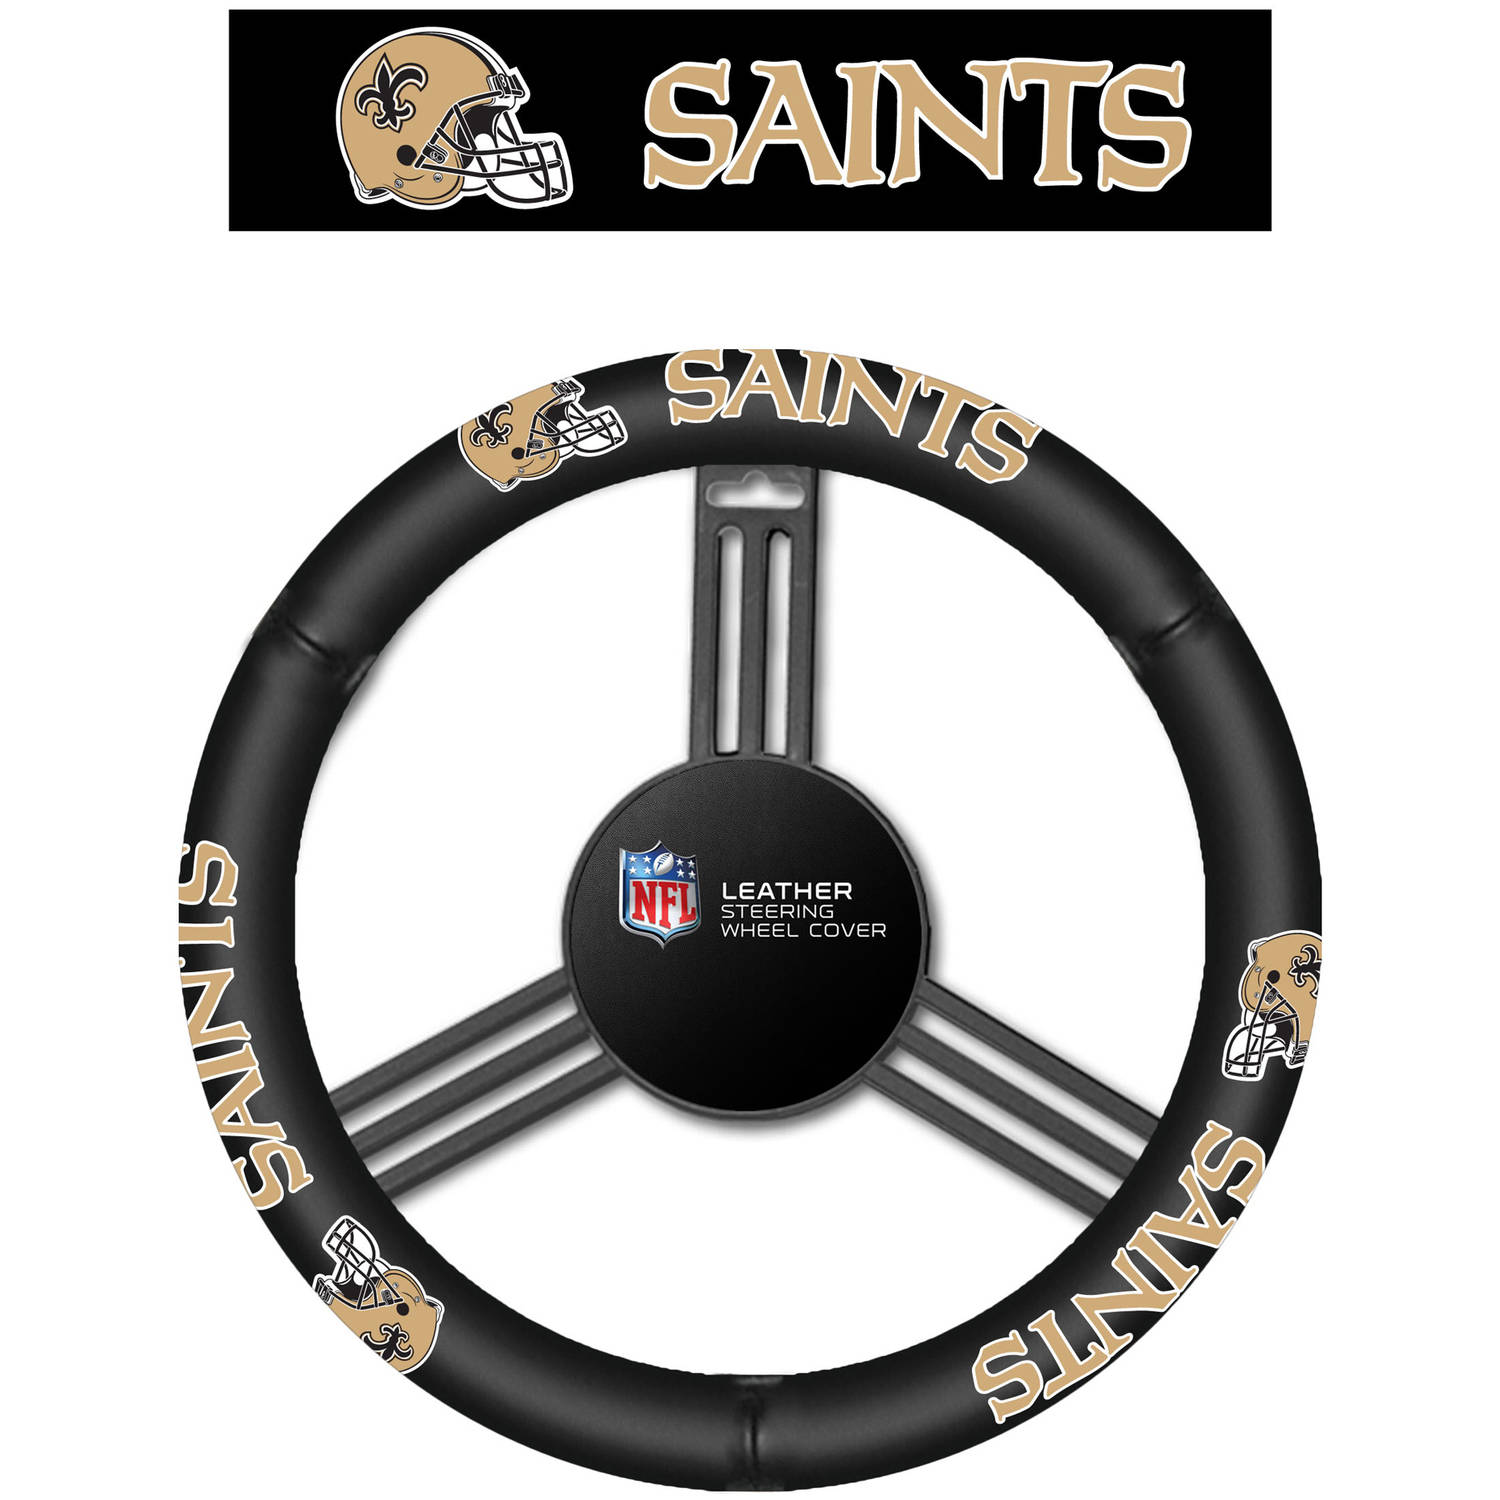 NFL Leather Steering Wheel Cover, New Orleans Saints